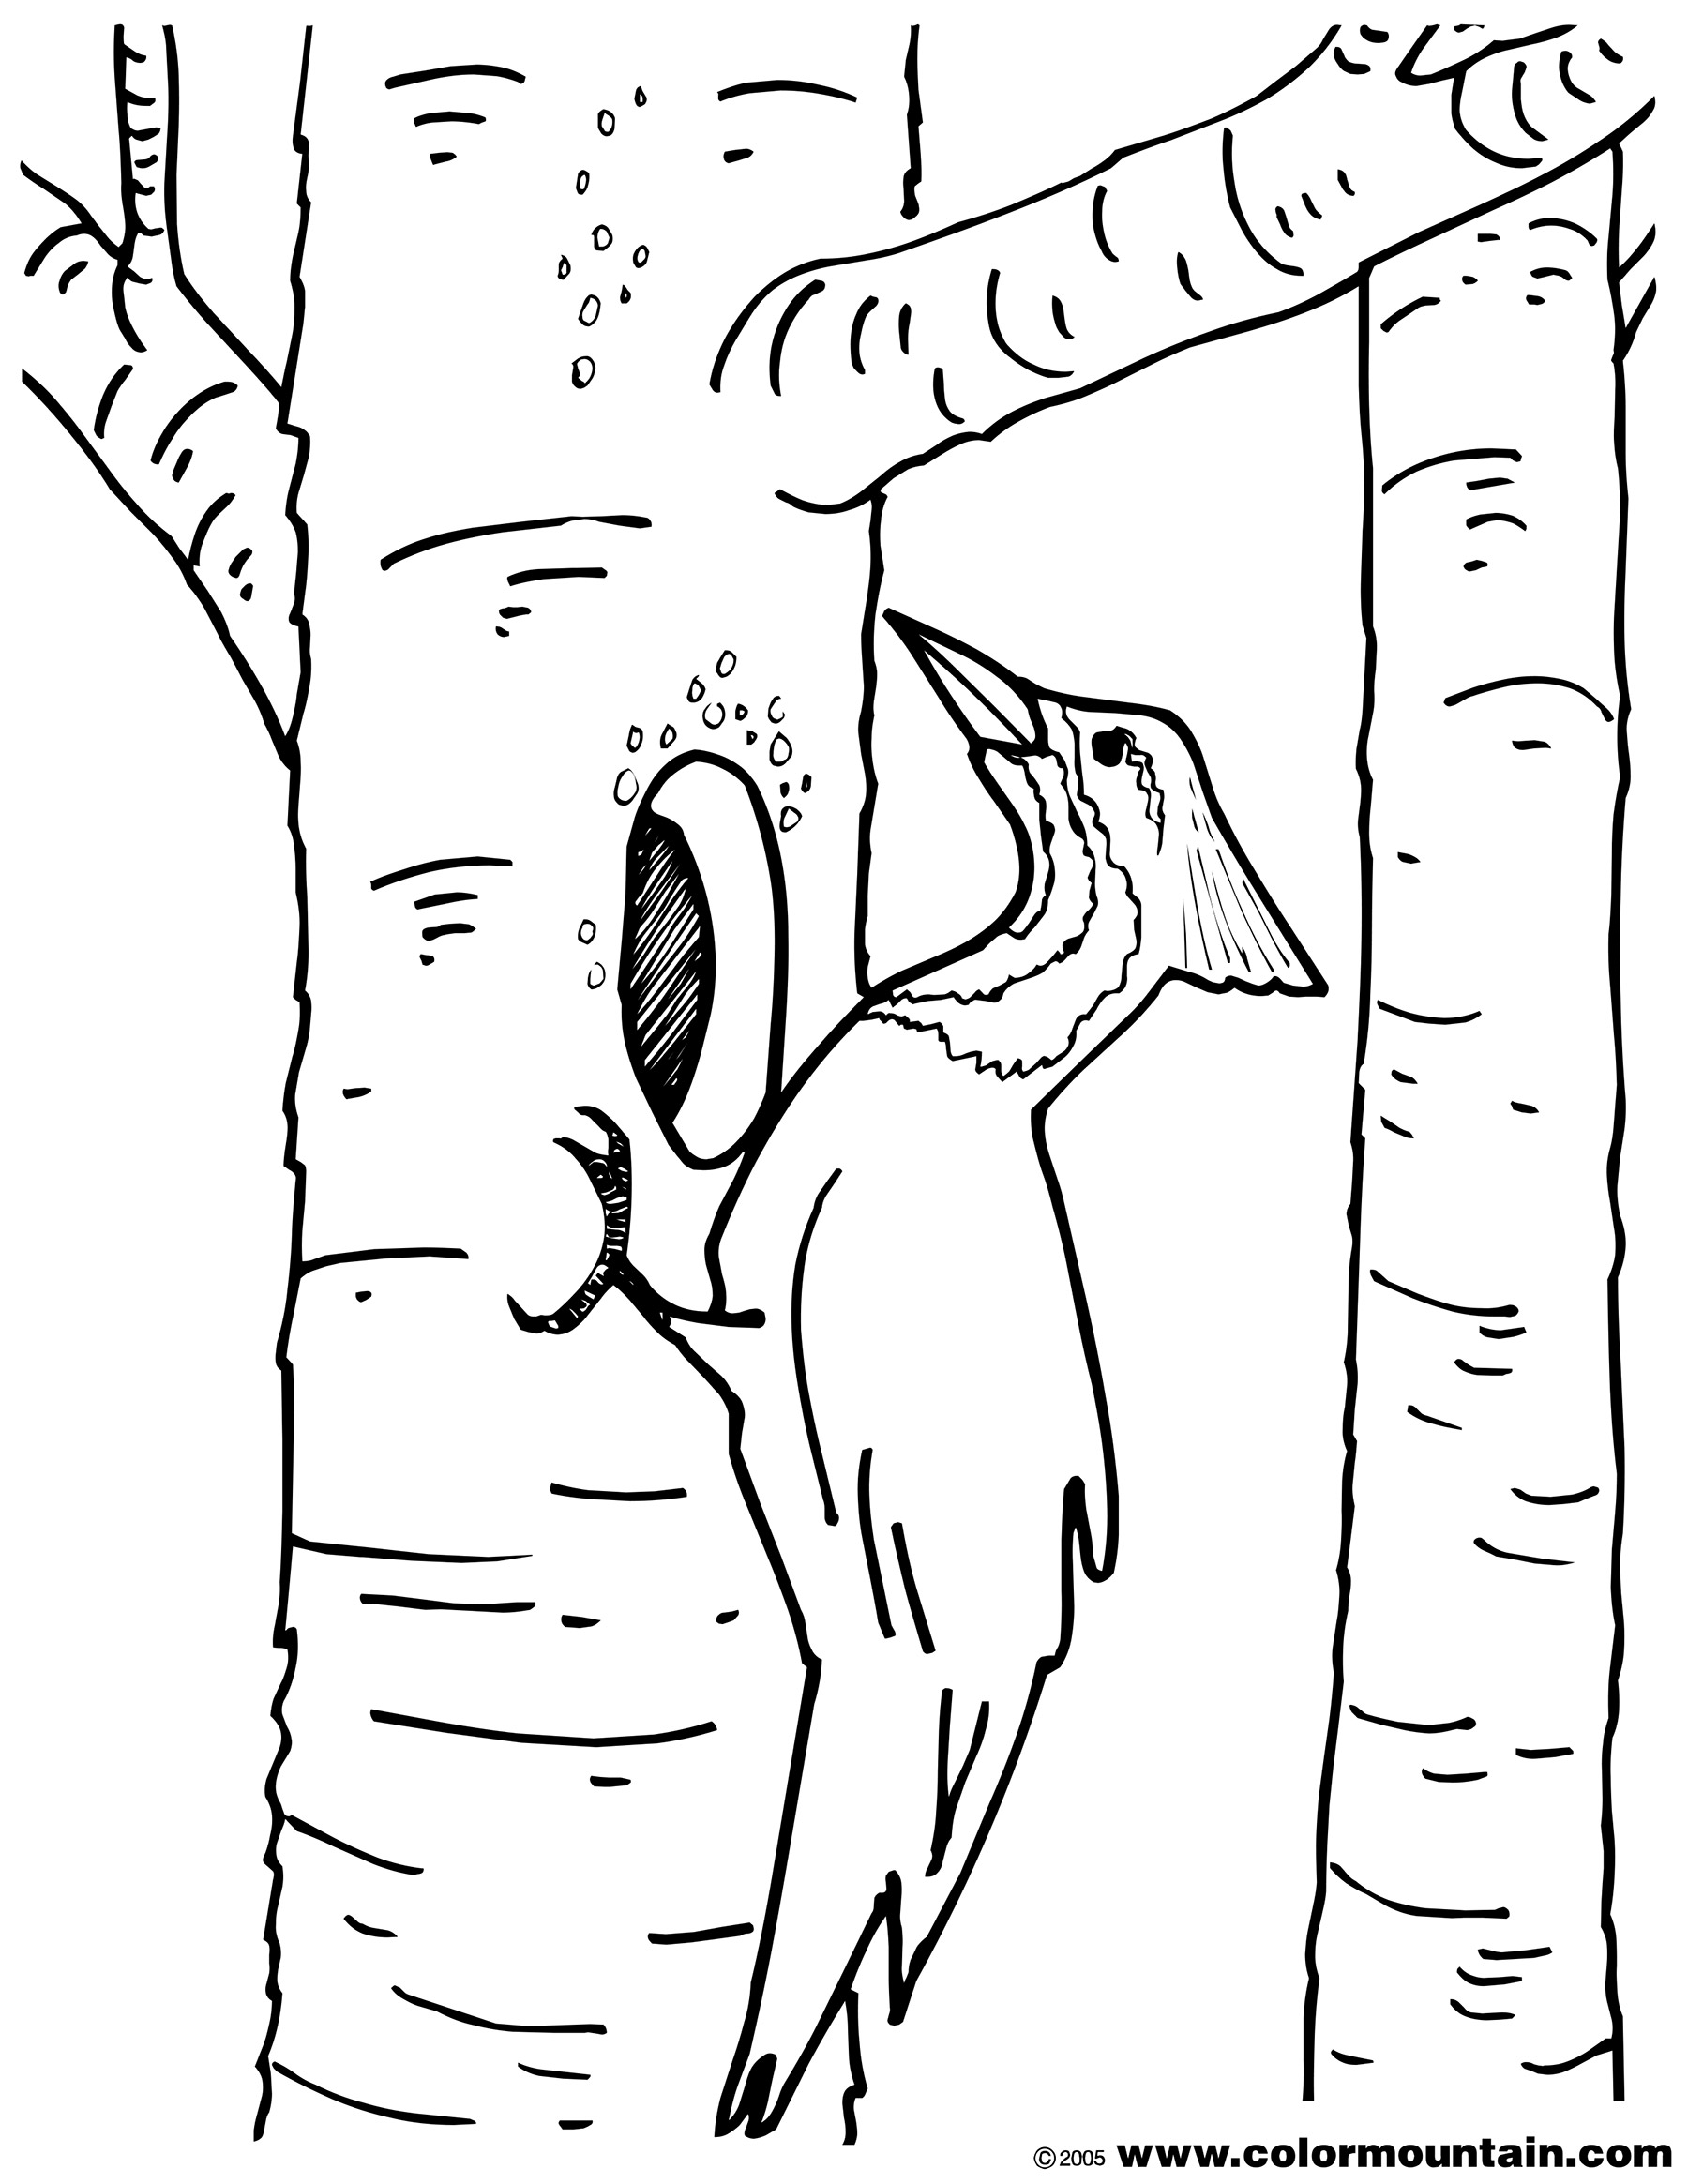 12 Woodpecker Coloring Pages For Kids